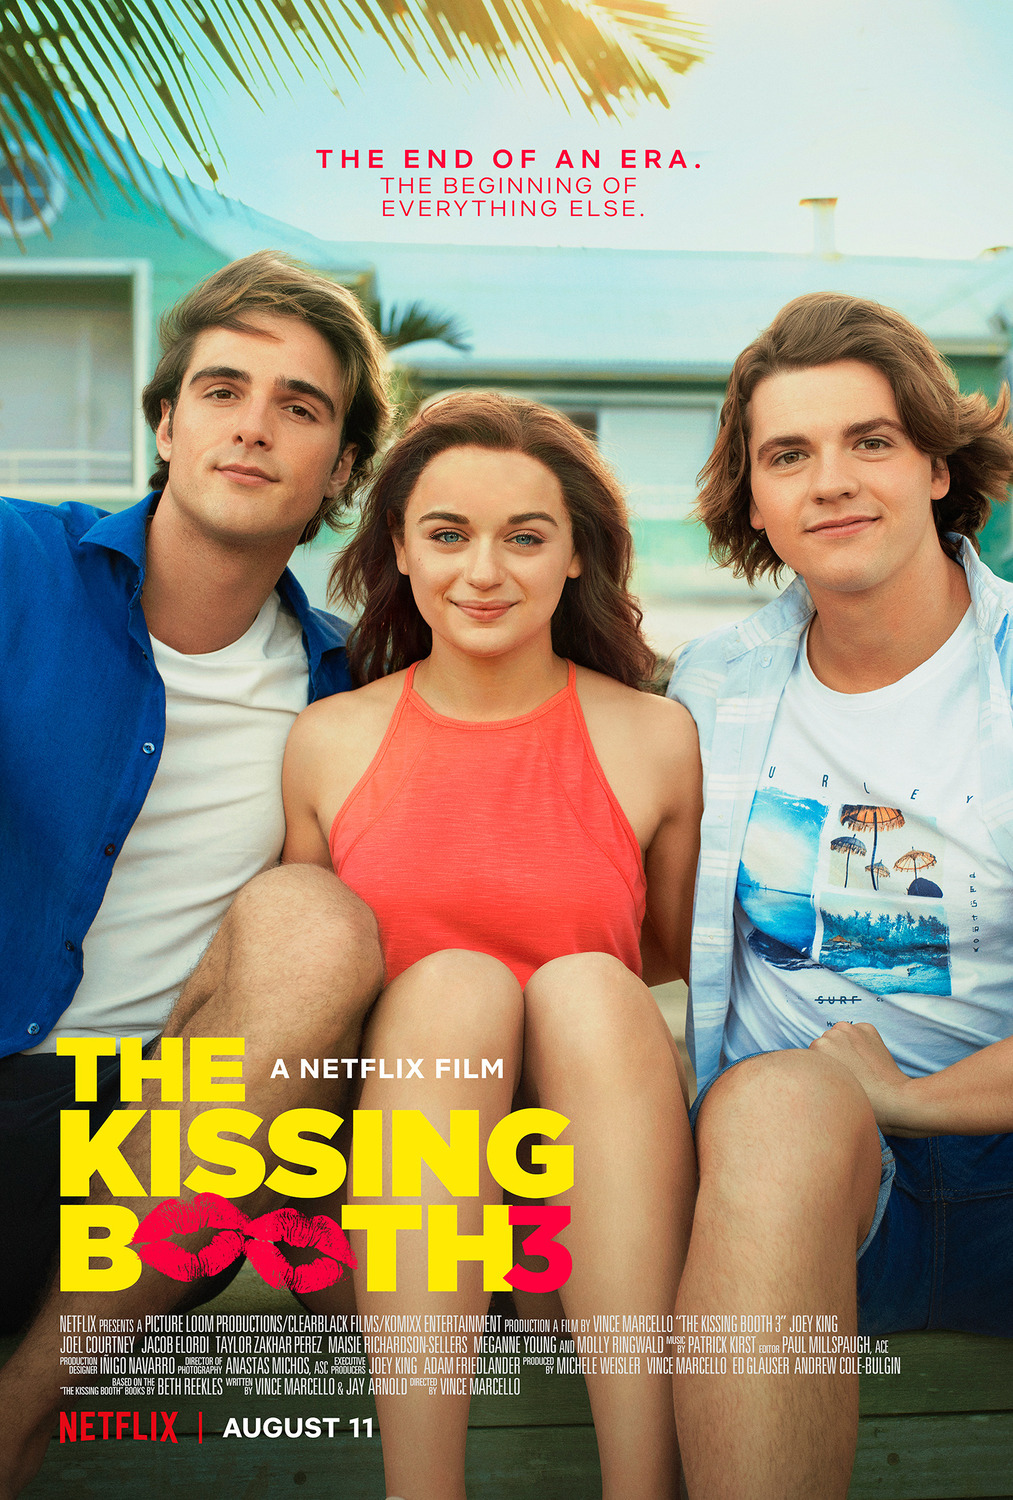 The Kissing Booth 3 | Official Trailer |